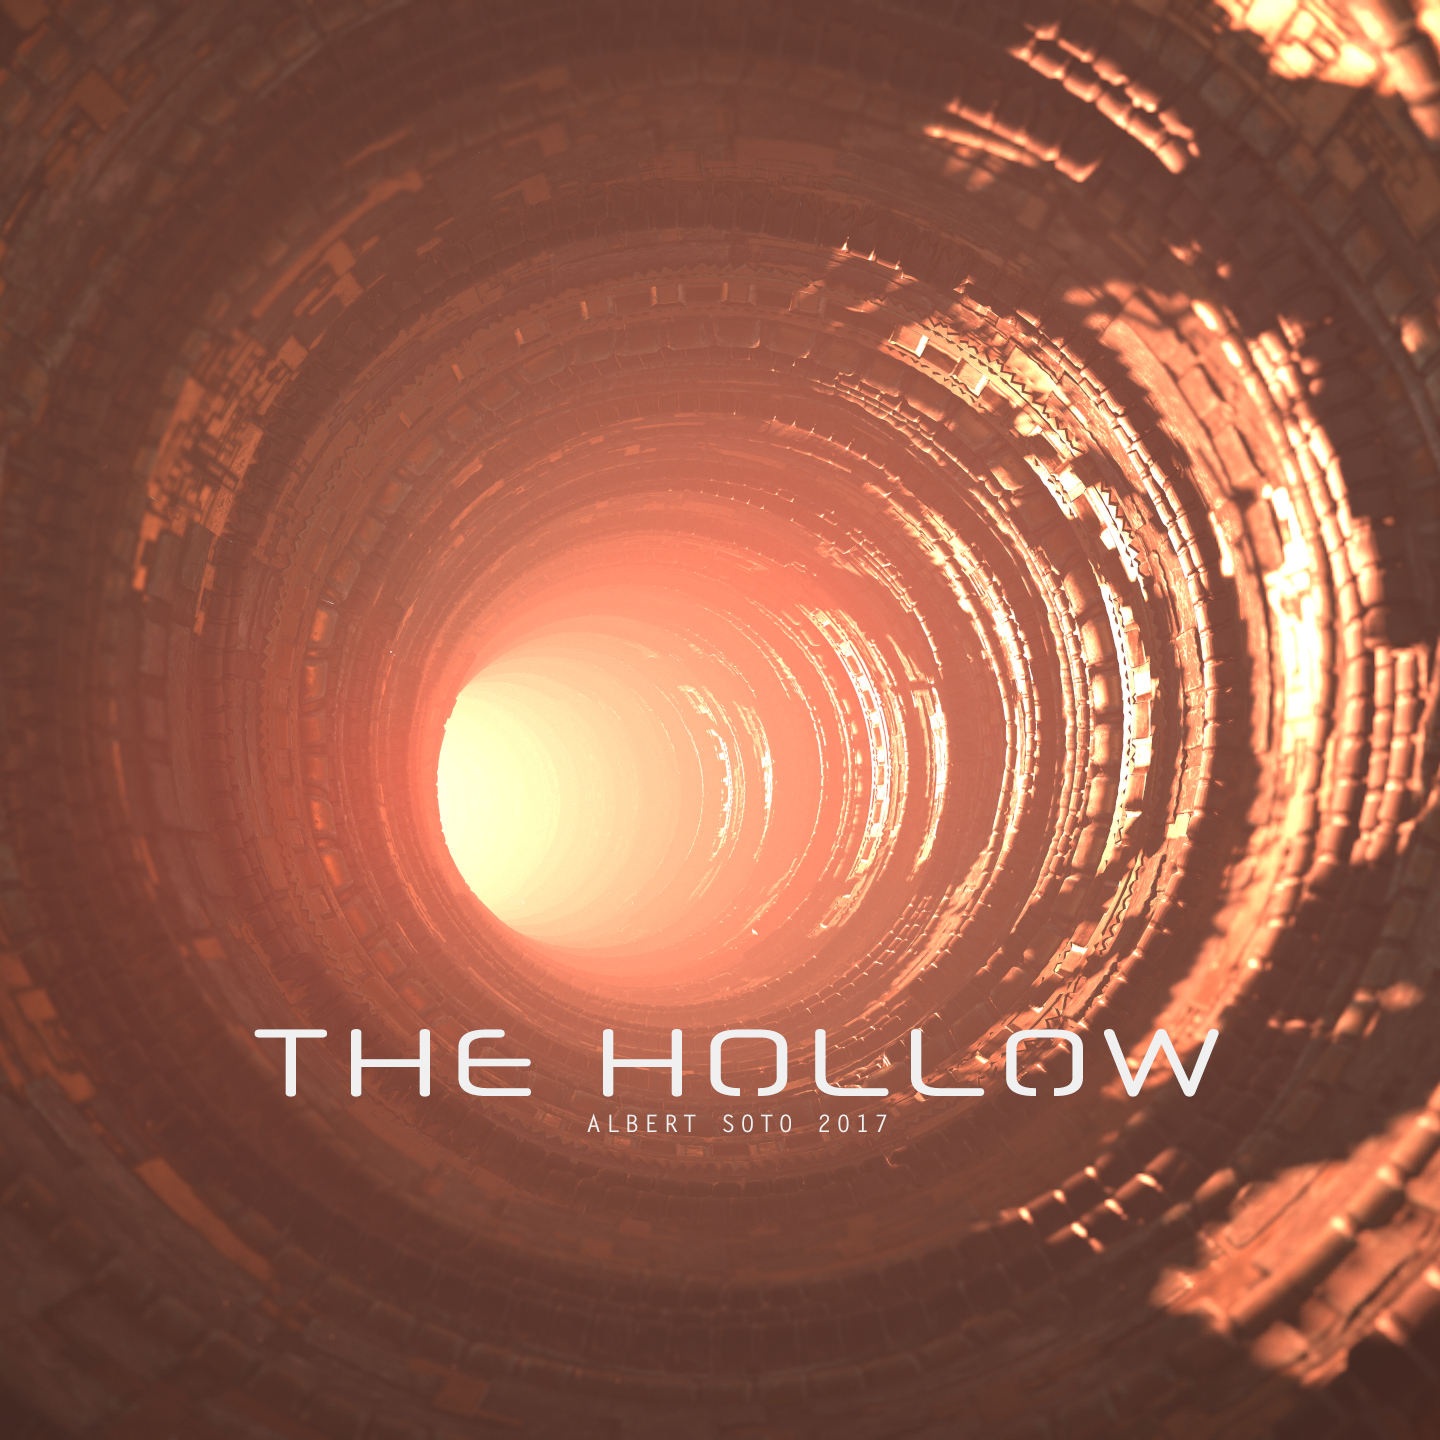 SciFi_Wall_Hollow1